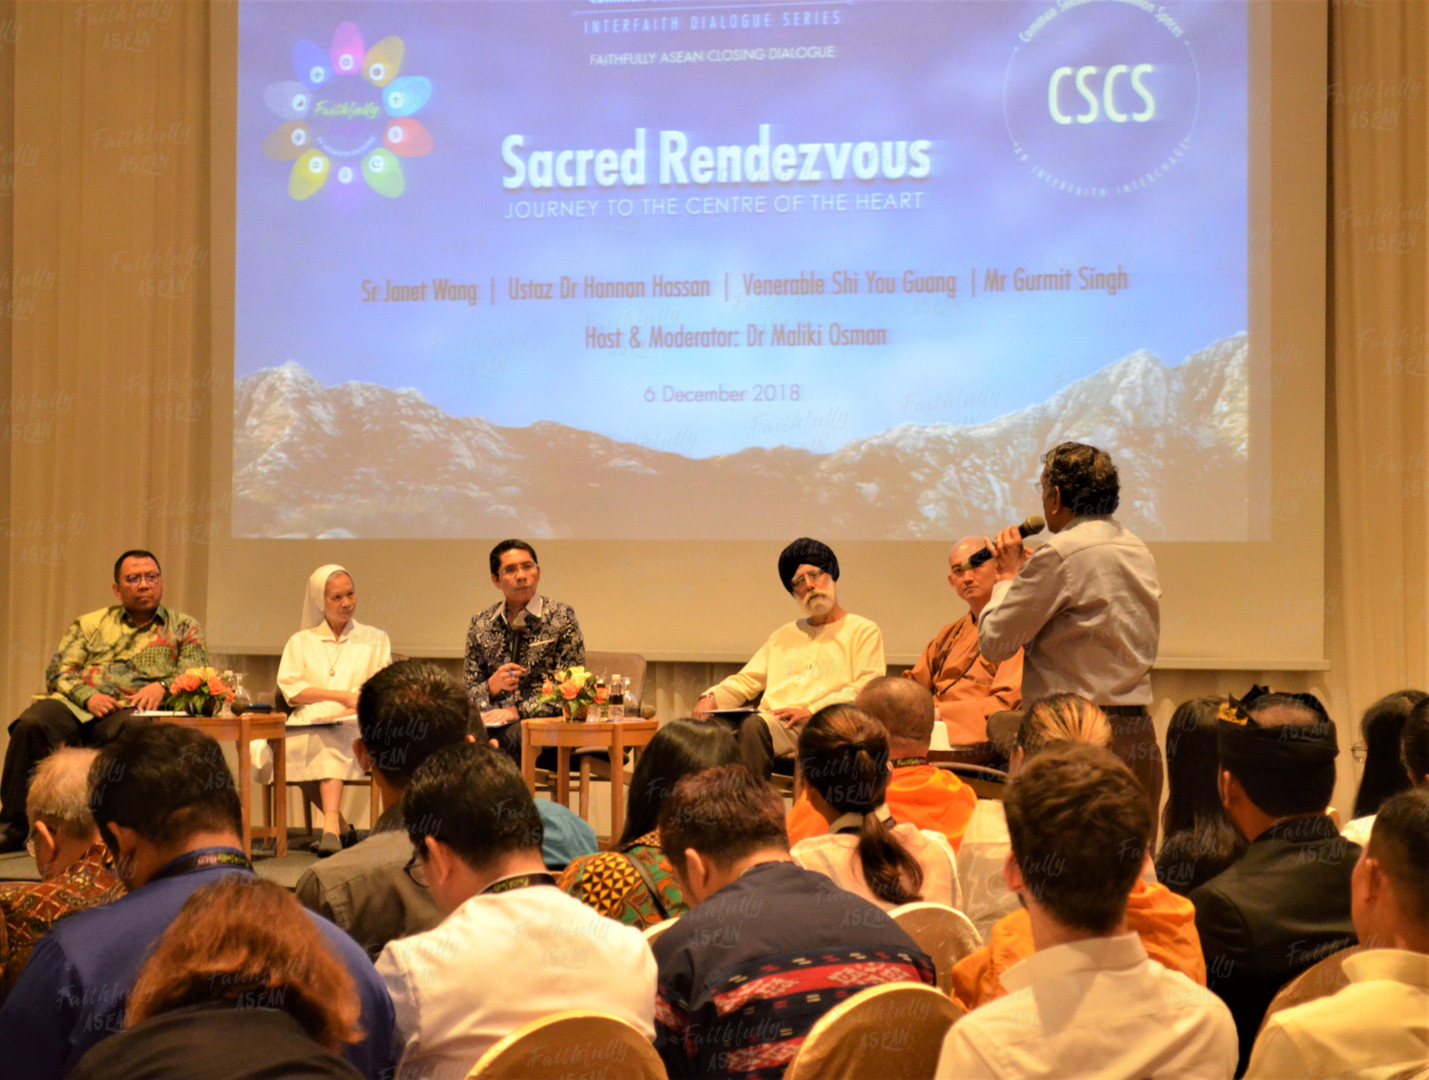 The CSCS interfaith dialogue was the finale of the FA18, discussing the topic 'Sacred Rendezvous', where speakers and the FA participants share on pilgrimages to holy sites of different religions discoursing on the histories, destinations, motivations and impacts of this common spiritual pillar across many beliefs. Interestingly, some holy sites of the different faiths – Judaism, Christianity and Islam, share close proximity within a common location – Jerusalem.  CSCS encourages more interaction for a deeper interfaith and intercultural understanding through the exchanges on key and common cultural and spiritual practices, to foster a greater appreciation of cultures, creeds and customs, hence camaraderie, confidence and commitment.